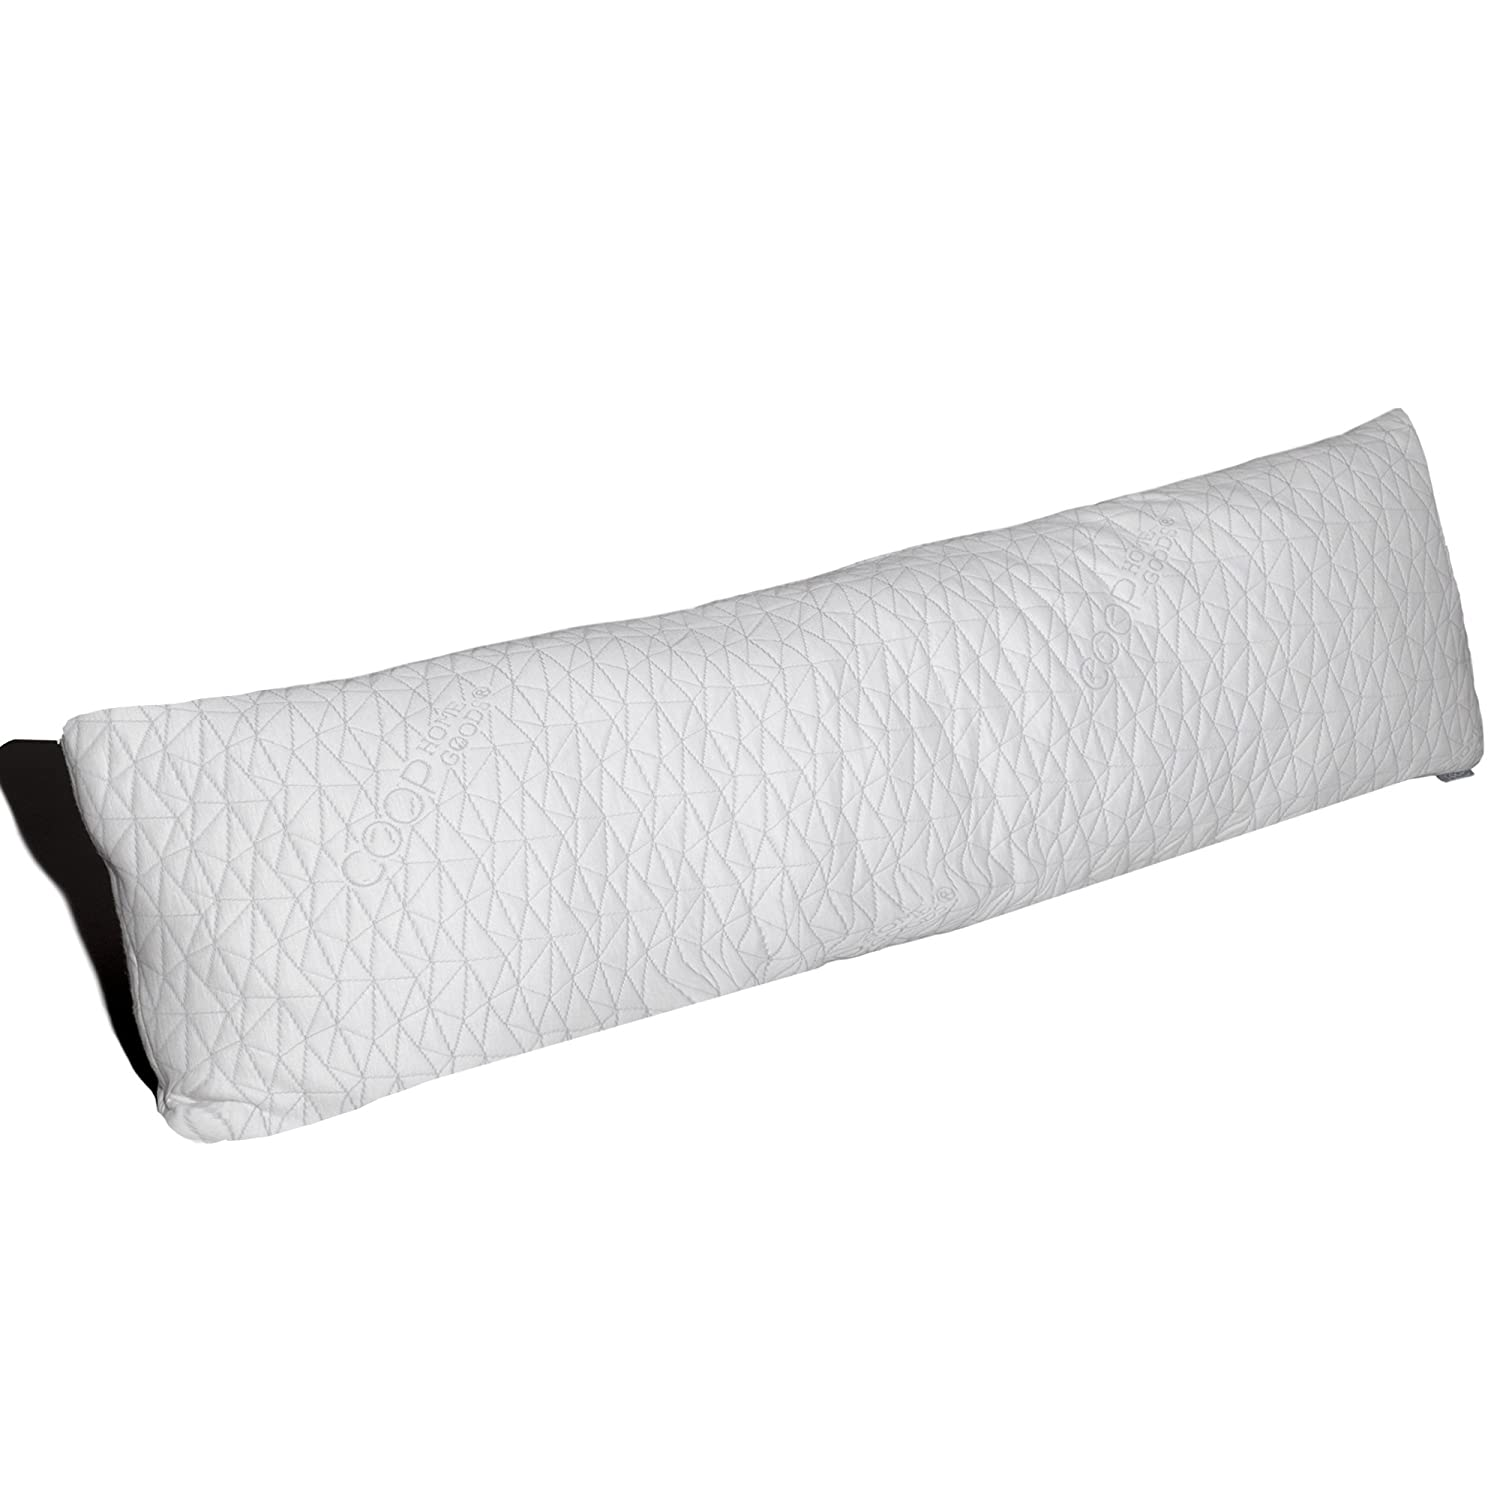 Coop Home Goods 20x54-Inch Shredded Memory Foam Pillow